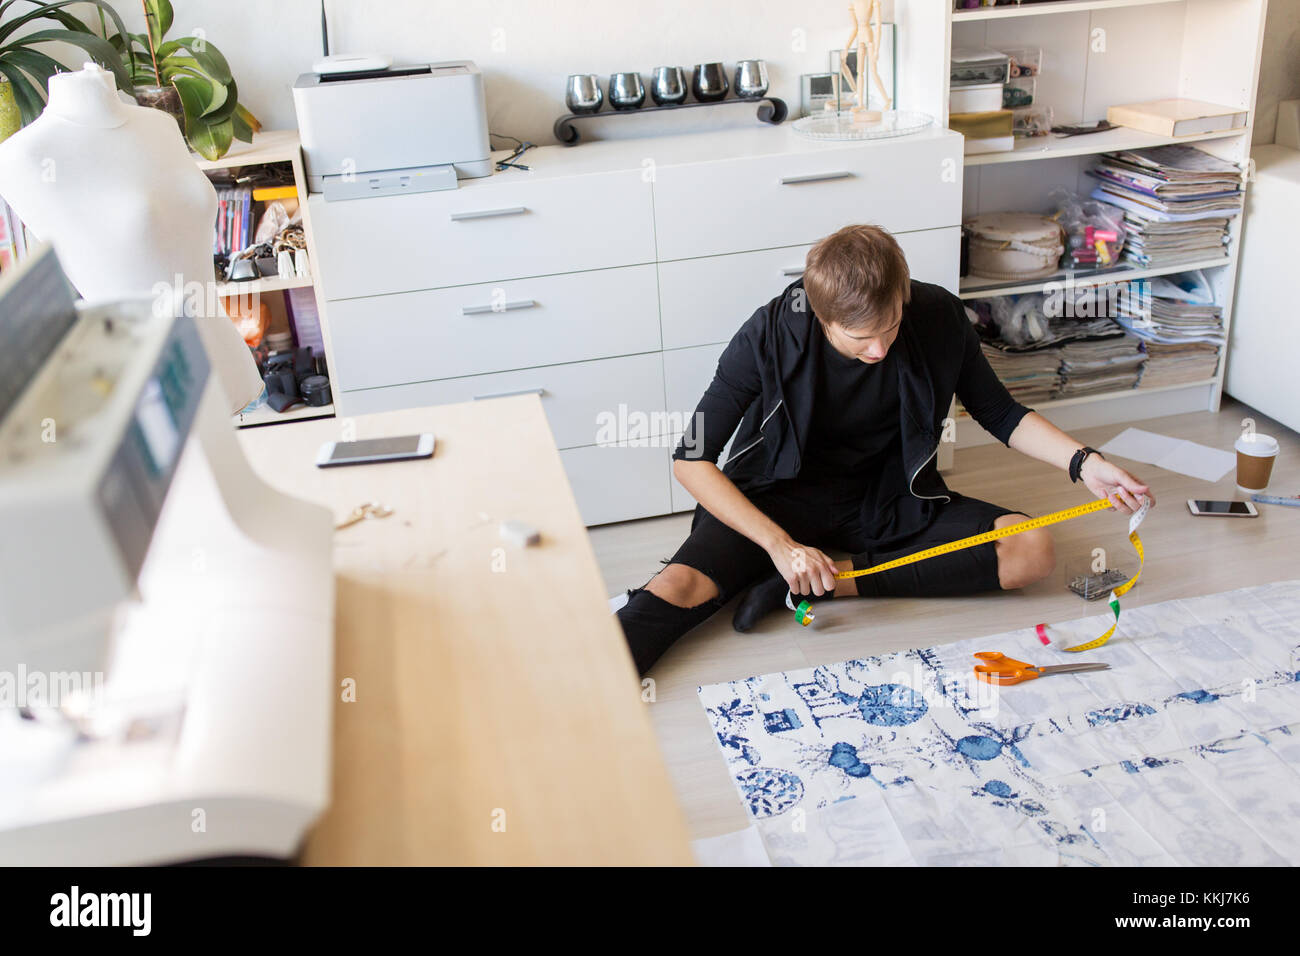 Fashion Designer Making Dress At Sewing Studio Stock Photo Alamy